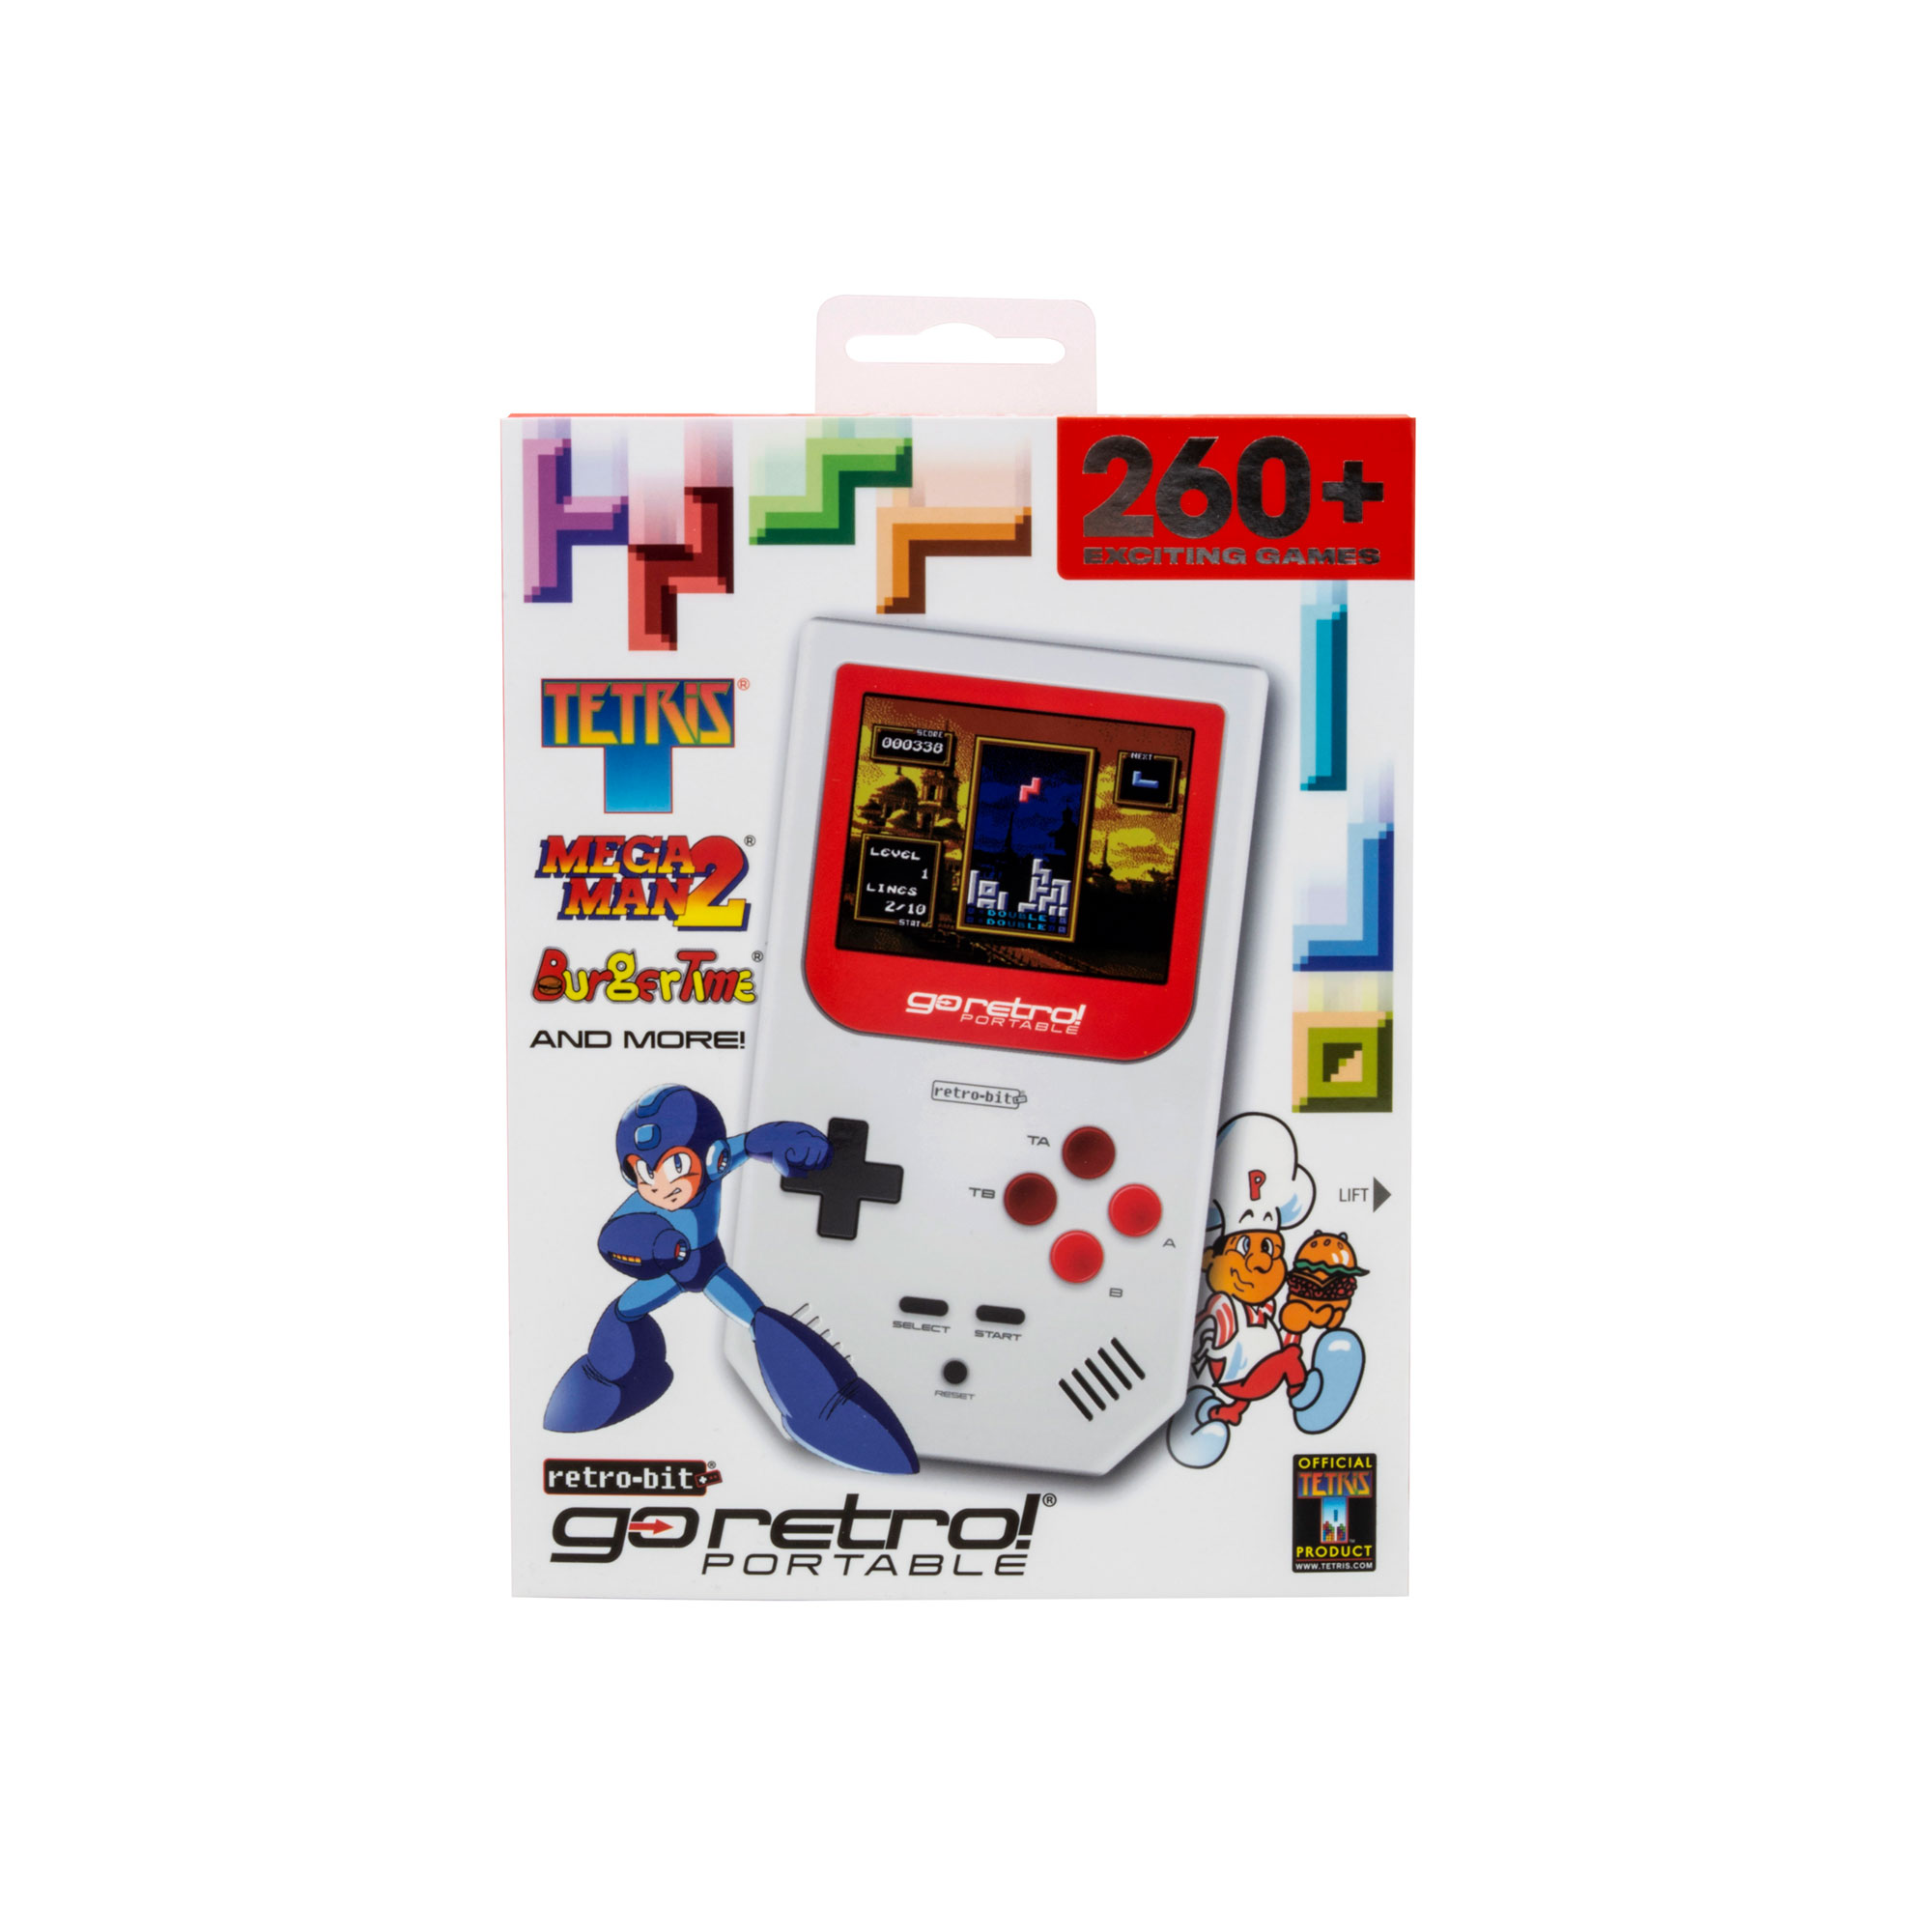 Retro-Bit Go Retro Portable, White / Red, RB-PP-9912